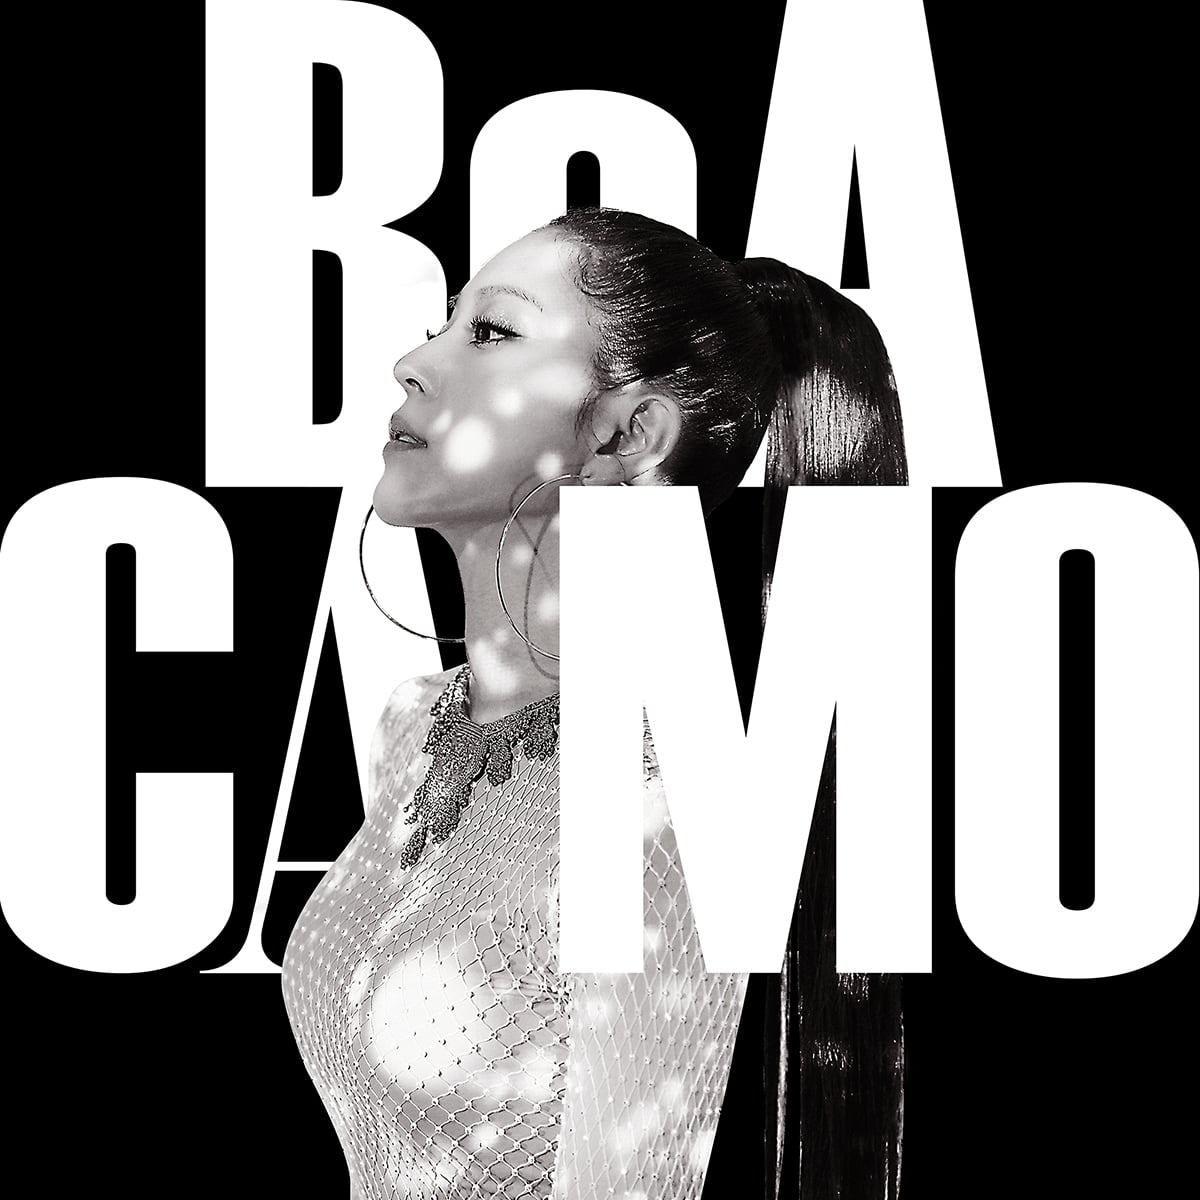 BoA Raises Hype With New Teaser Image For CAMO